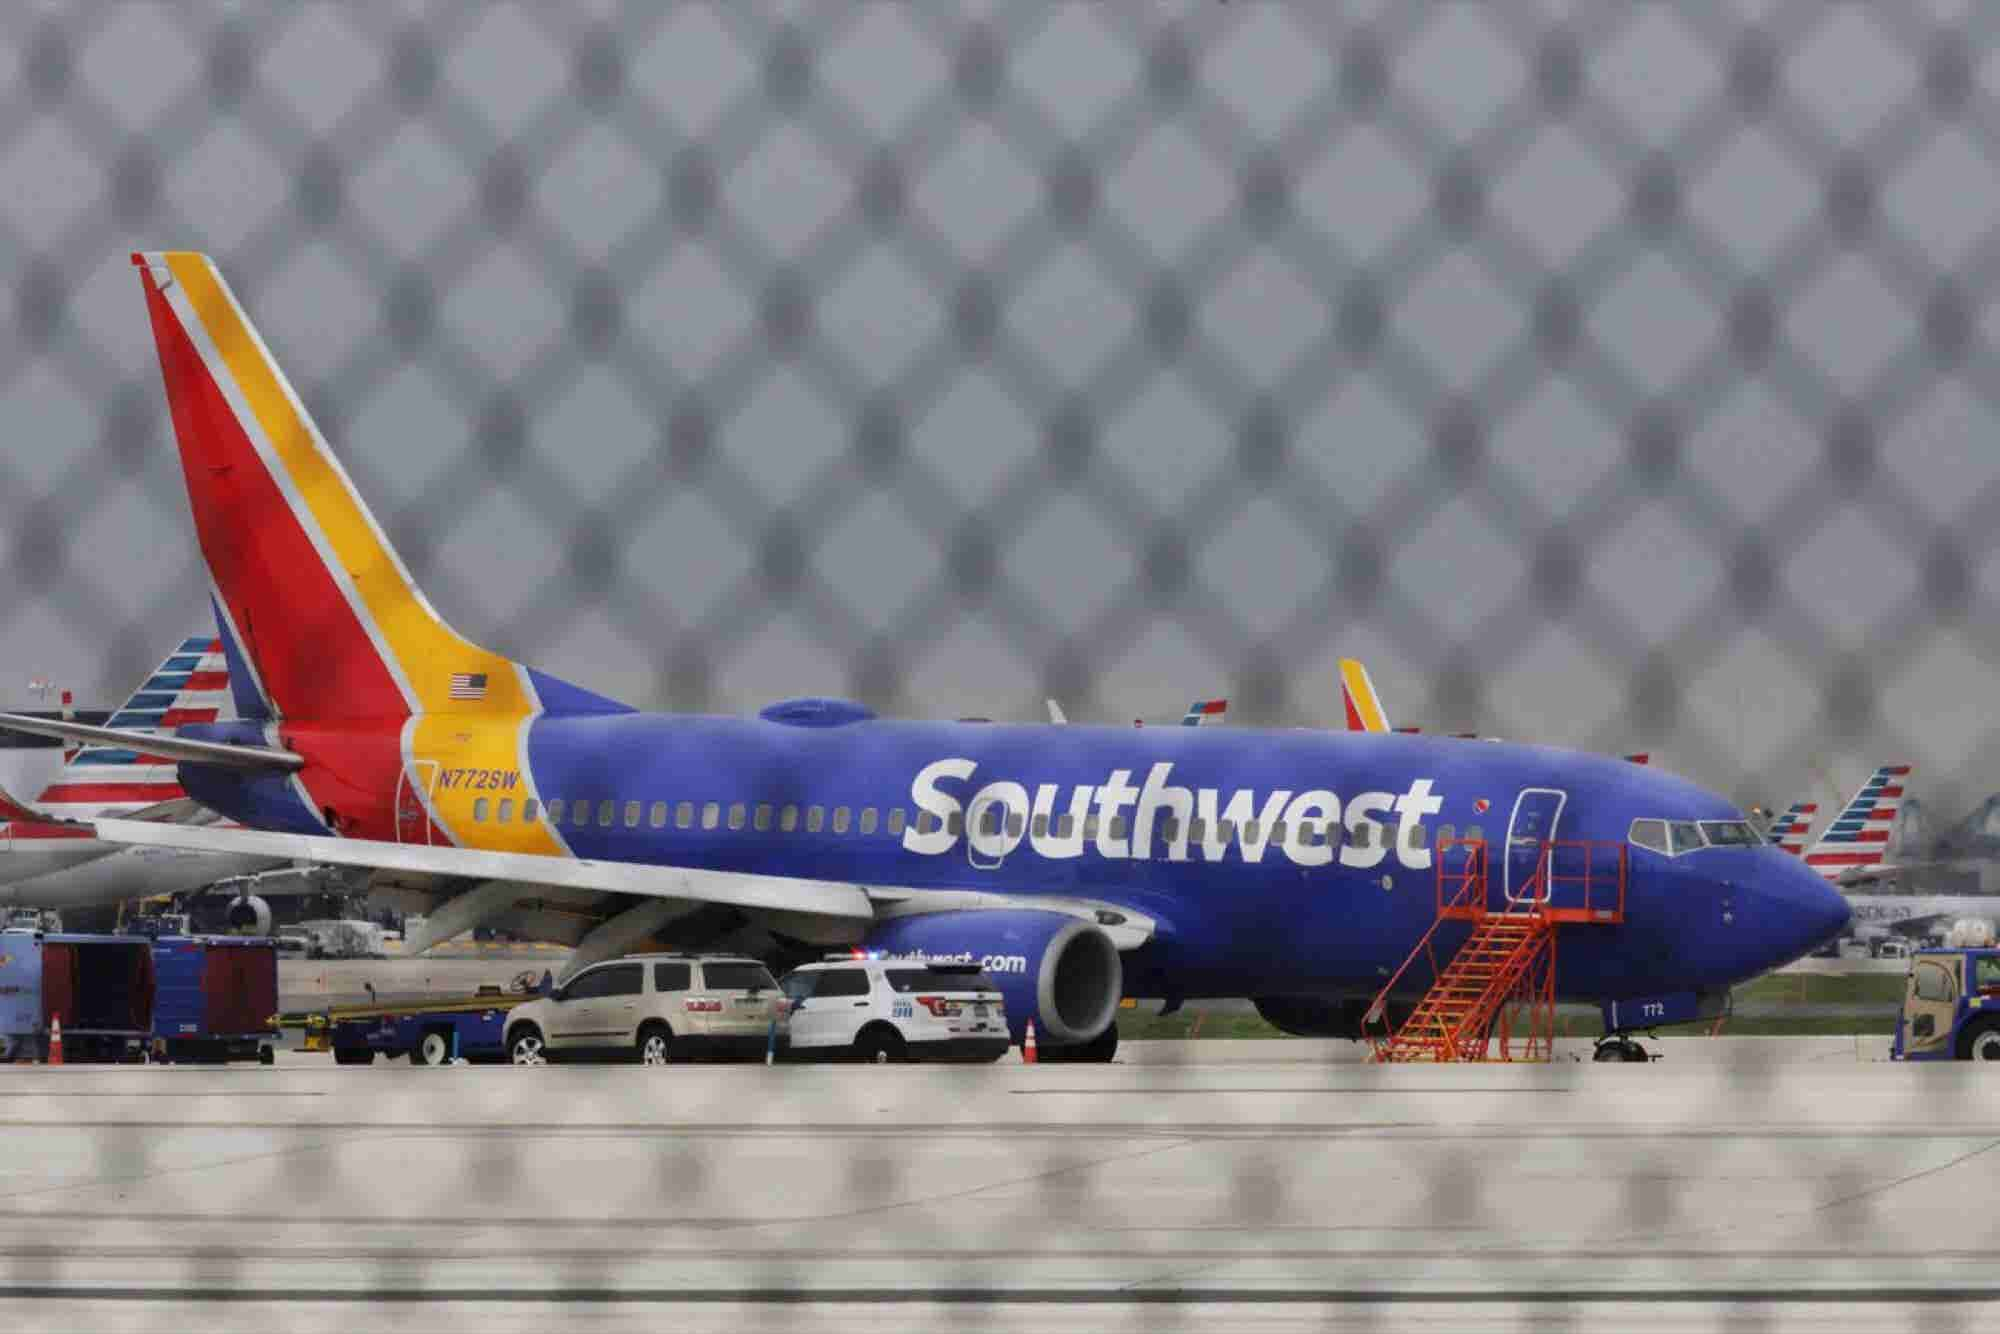 Southwest's Heroic Crew Shows How a Strong Leader and Preparation Create Good Teamwork